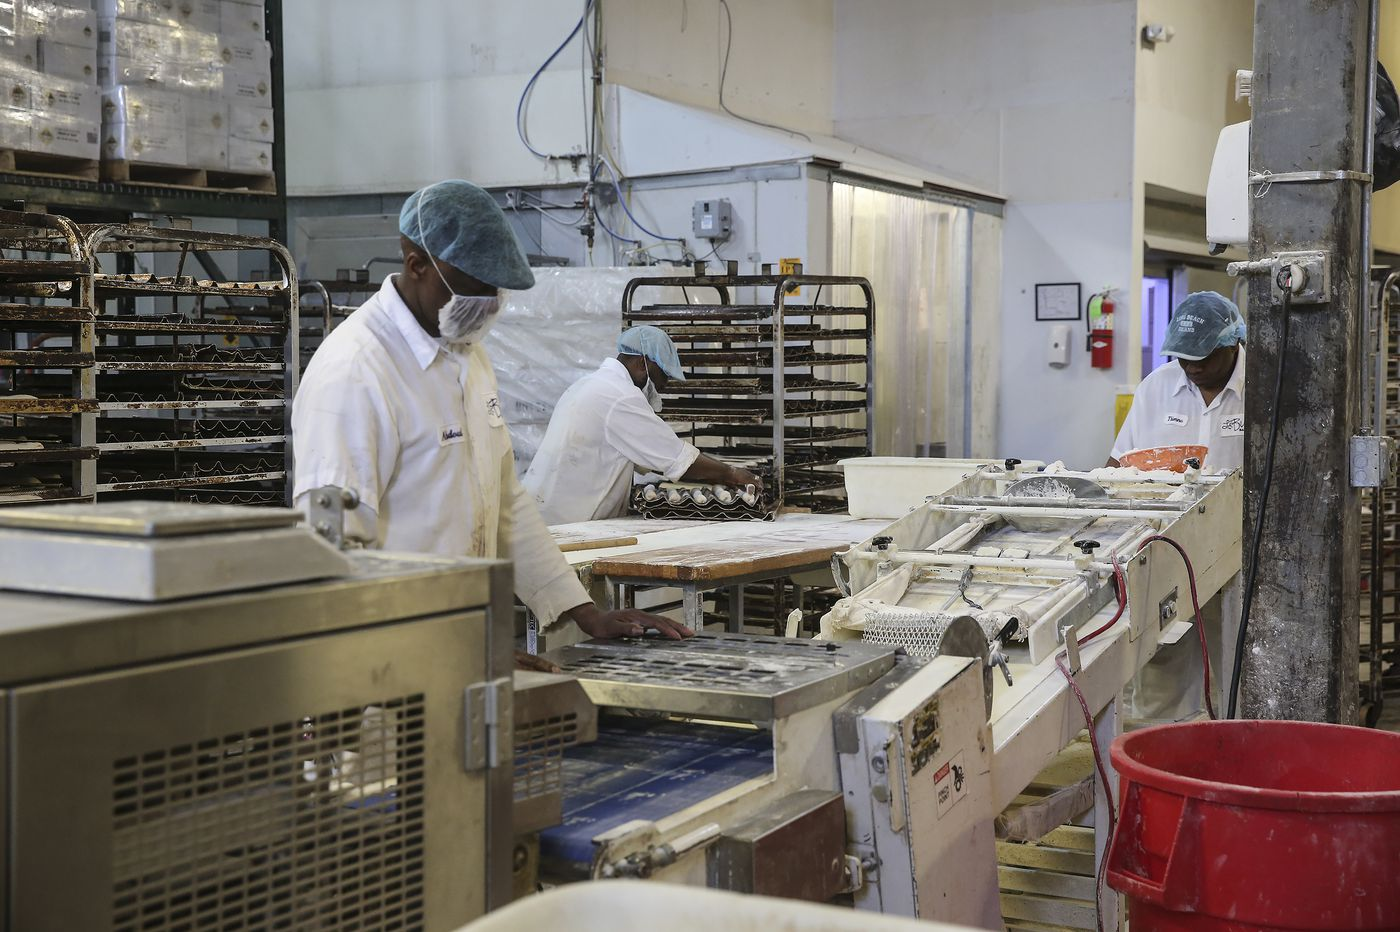 A sad day as coronavirus forces layoffs at Le Bus. Bakery vows: 'We intend to survive.' | Maria Panaritis